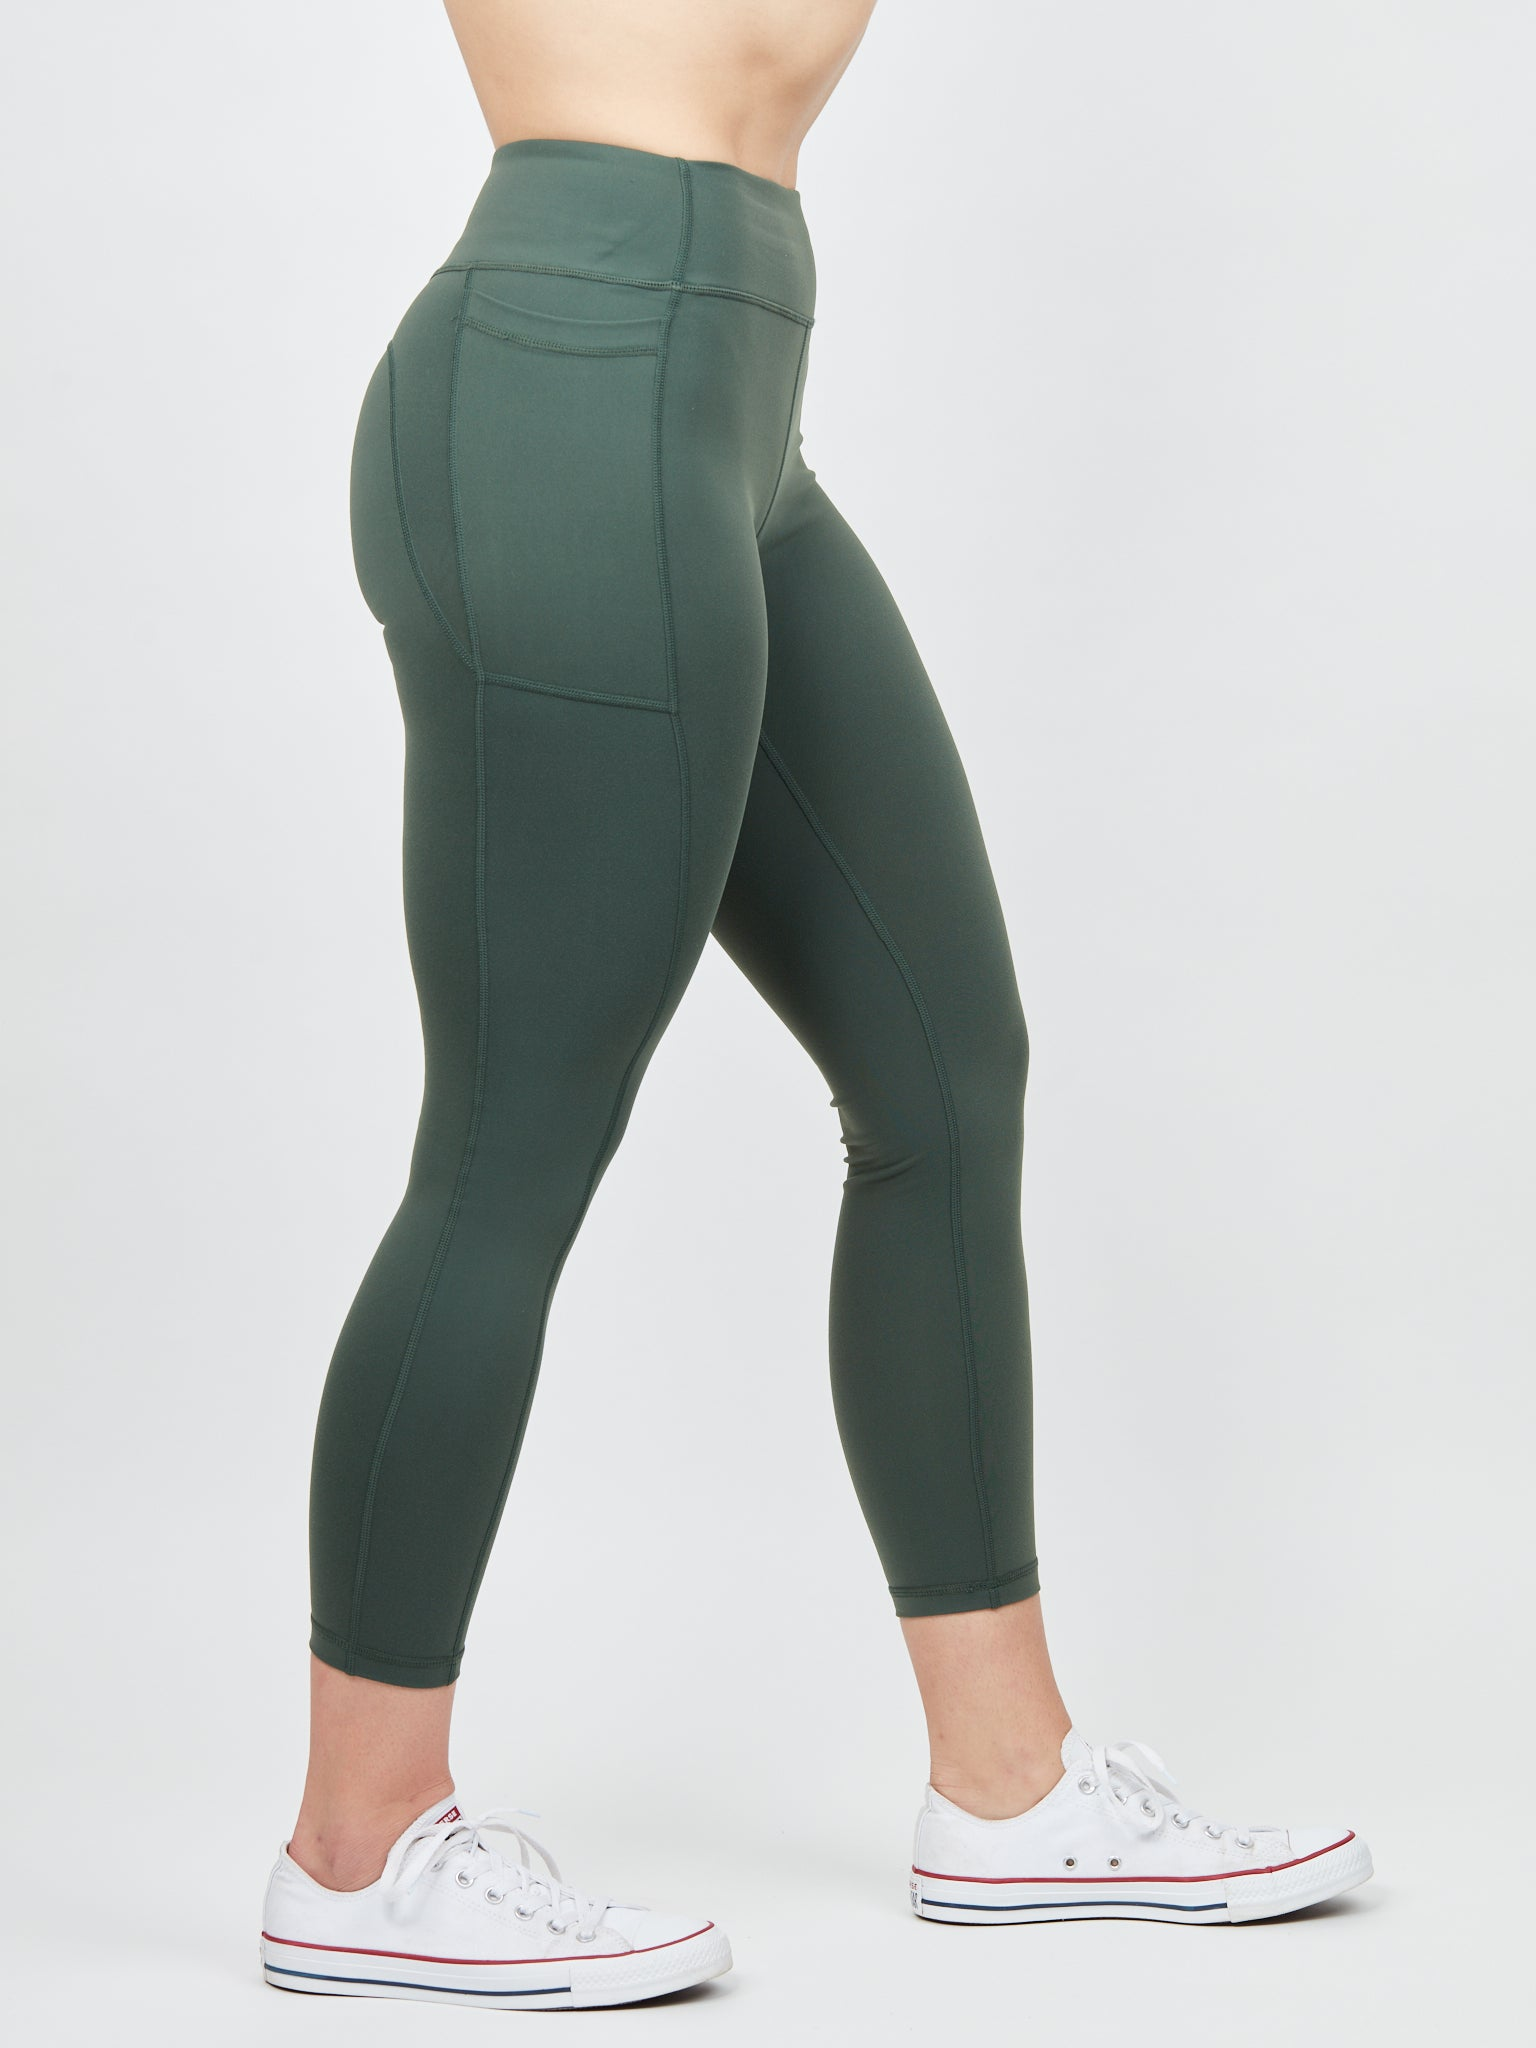 Kennedy Legging - Juniper